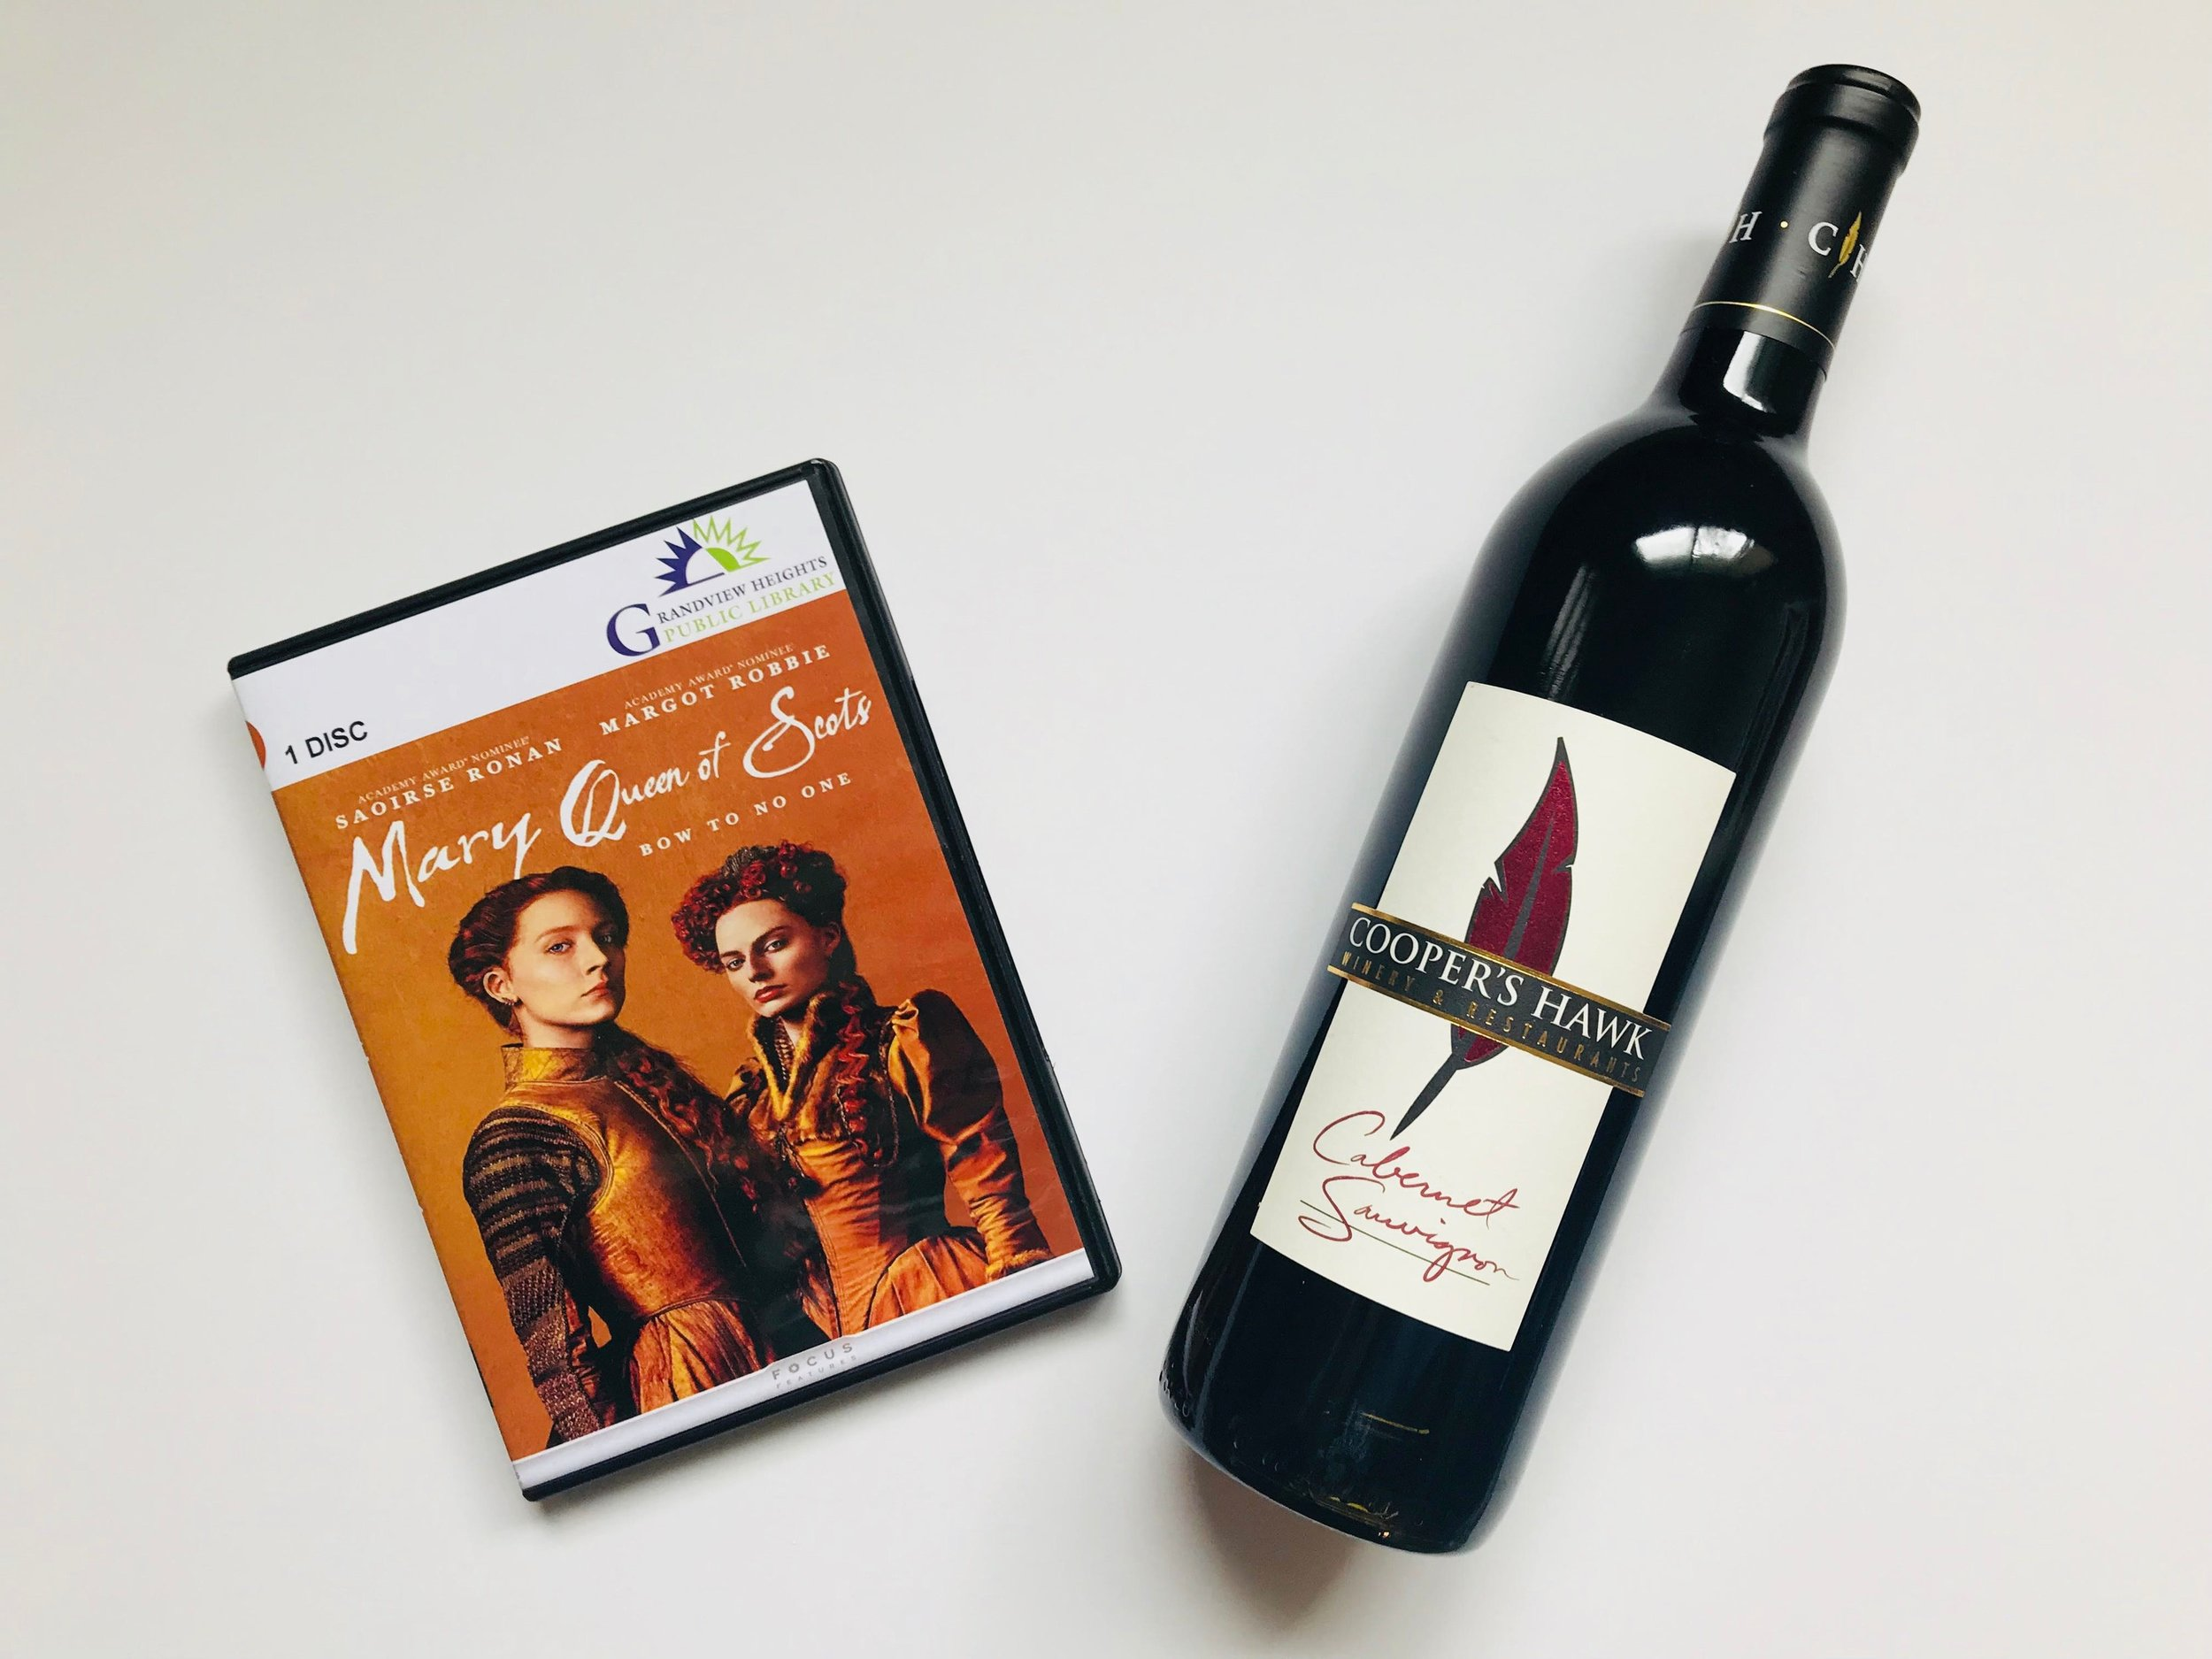 3. Friday Night In - Budget-friendly date night in - a library movie rental, Mary Queen of Scots, and red wine from our favorite restaurant.